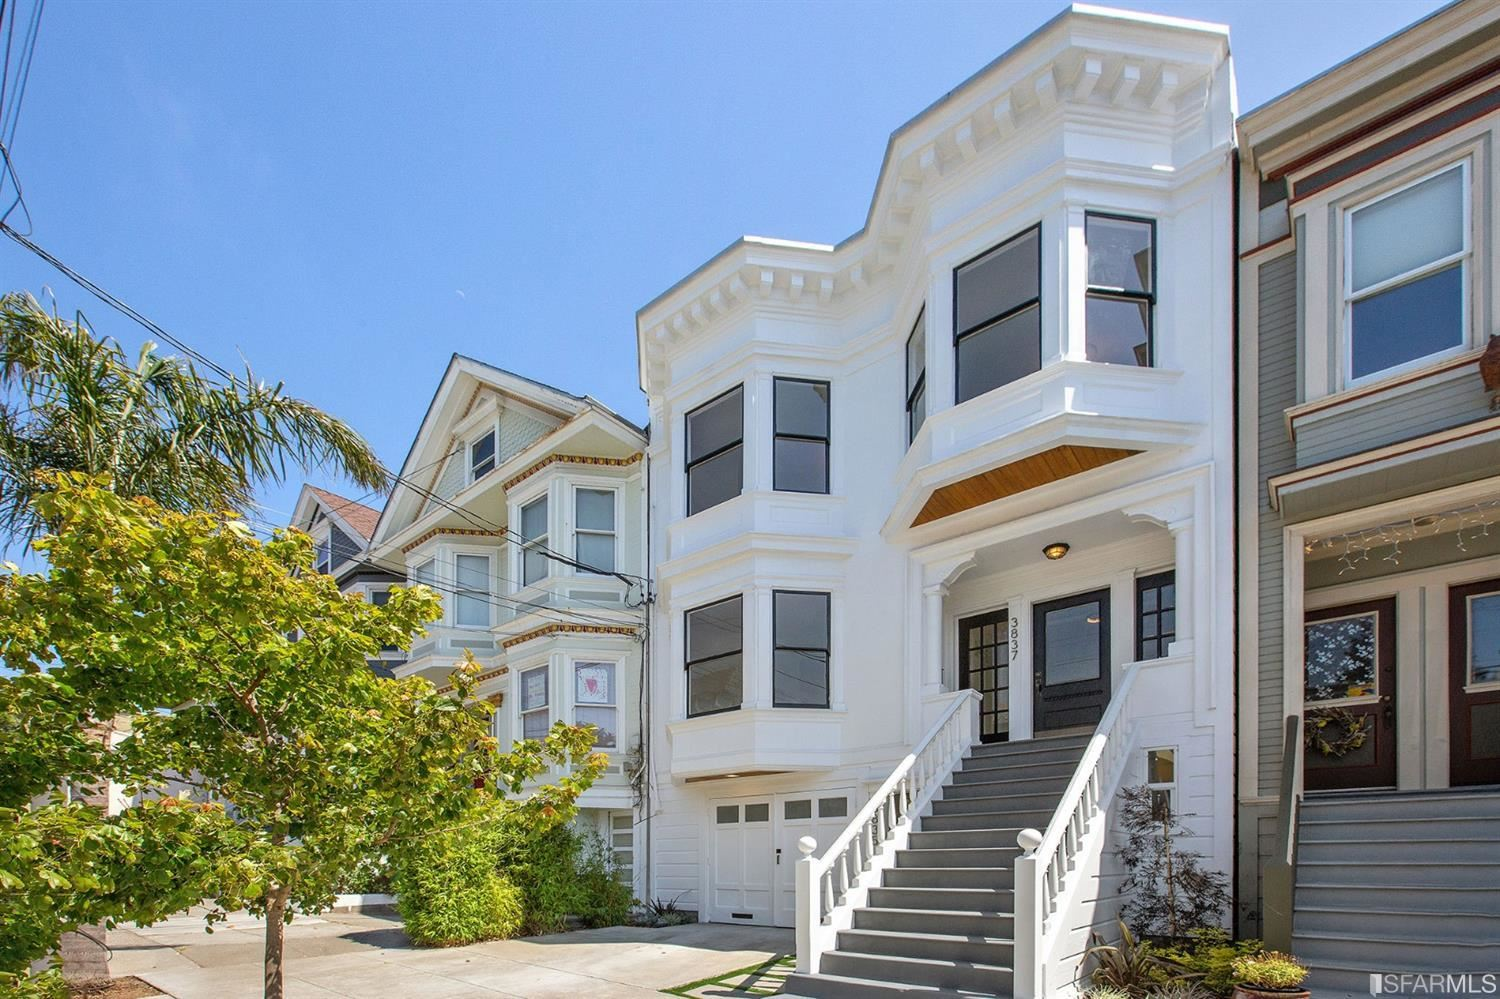 3835 3837 26th Street #2 Units, San Francisco, CA 94131 - #: 502152